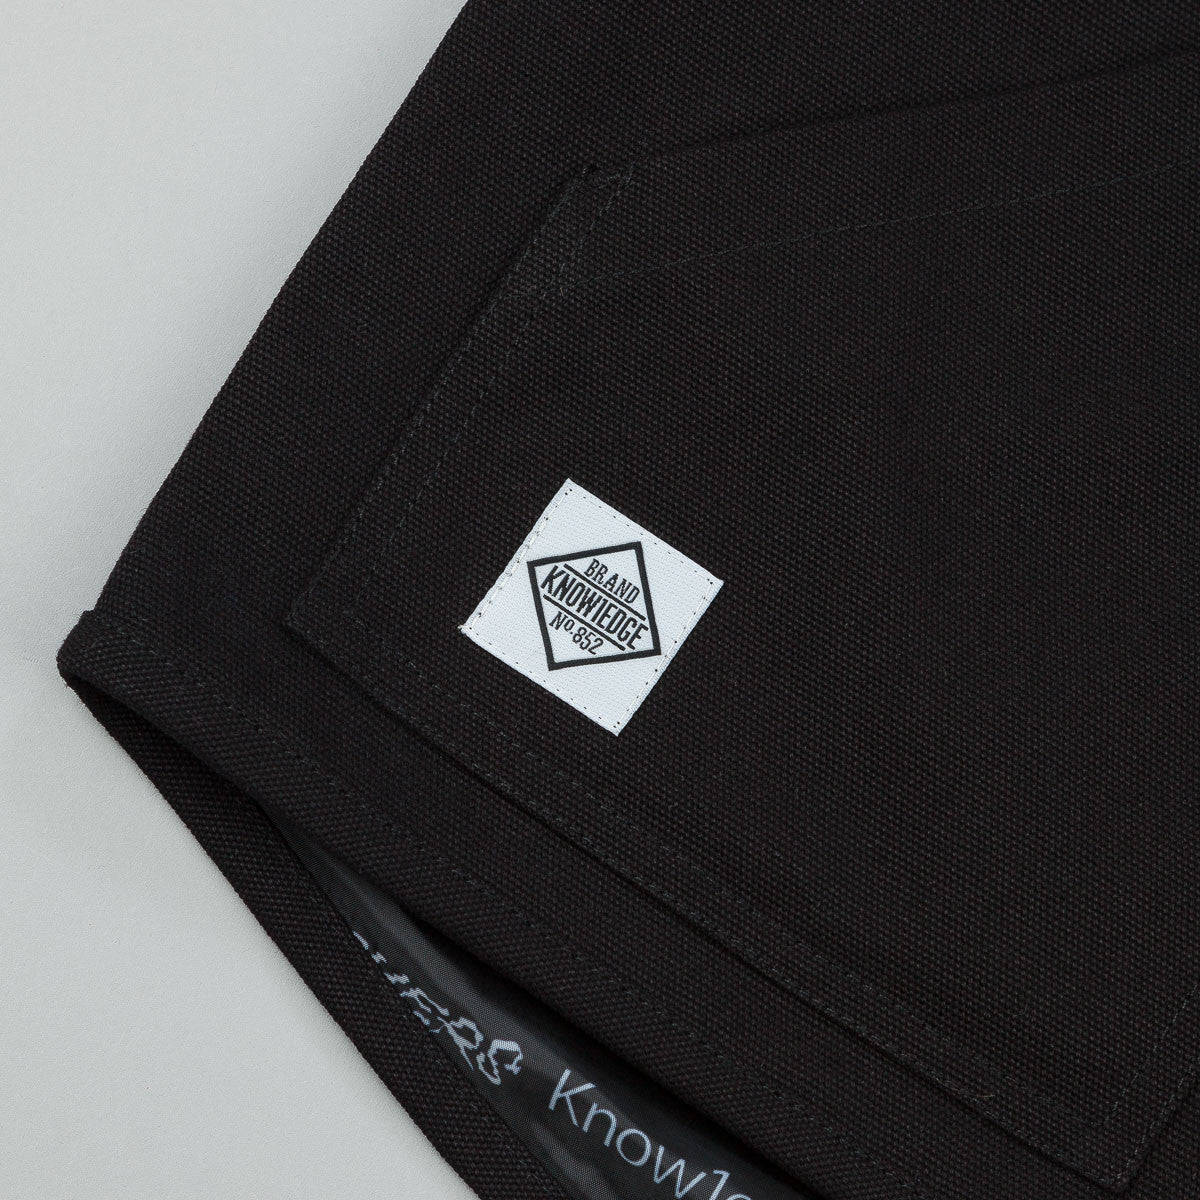 Doom Sayers X Know1edge Vest - Black